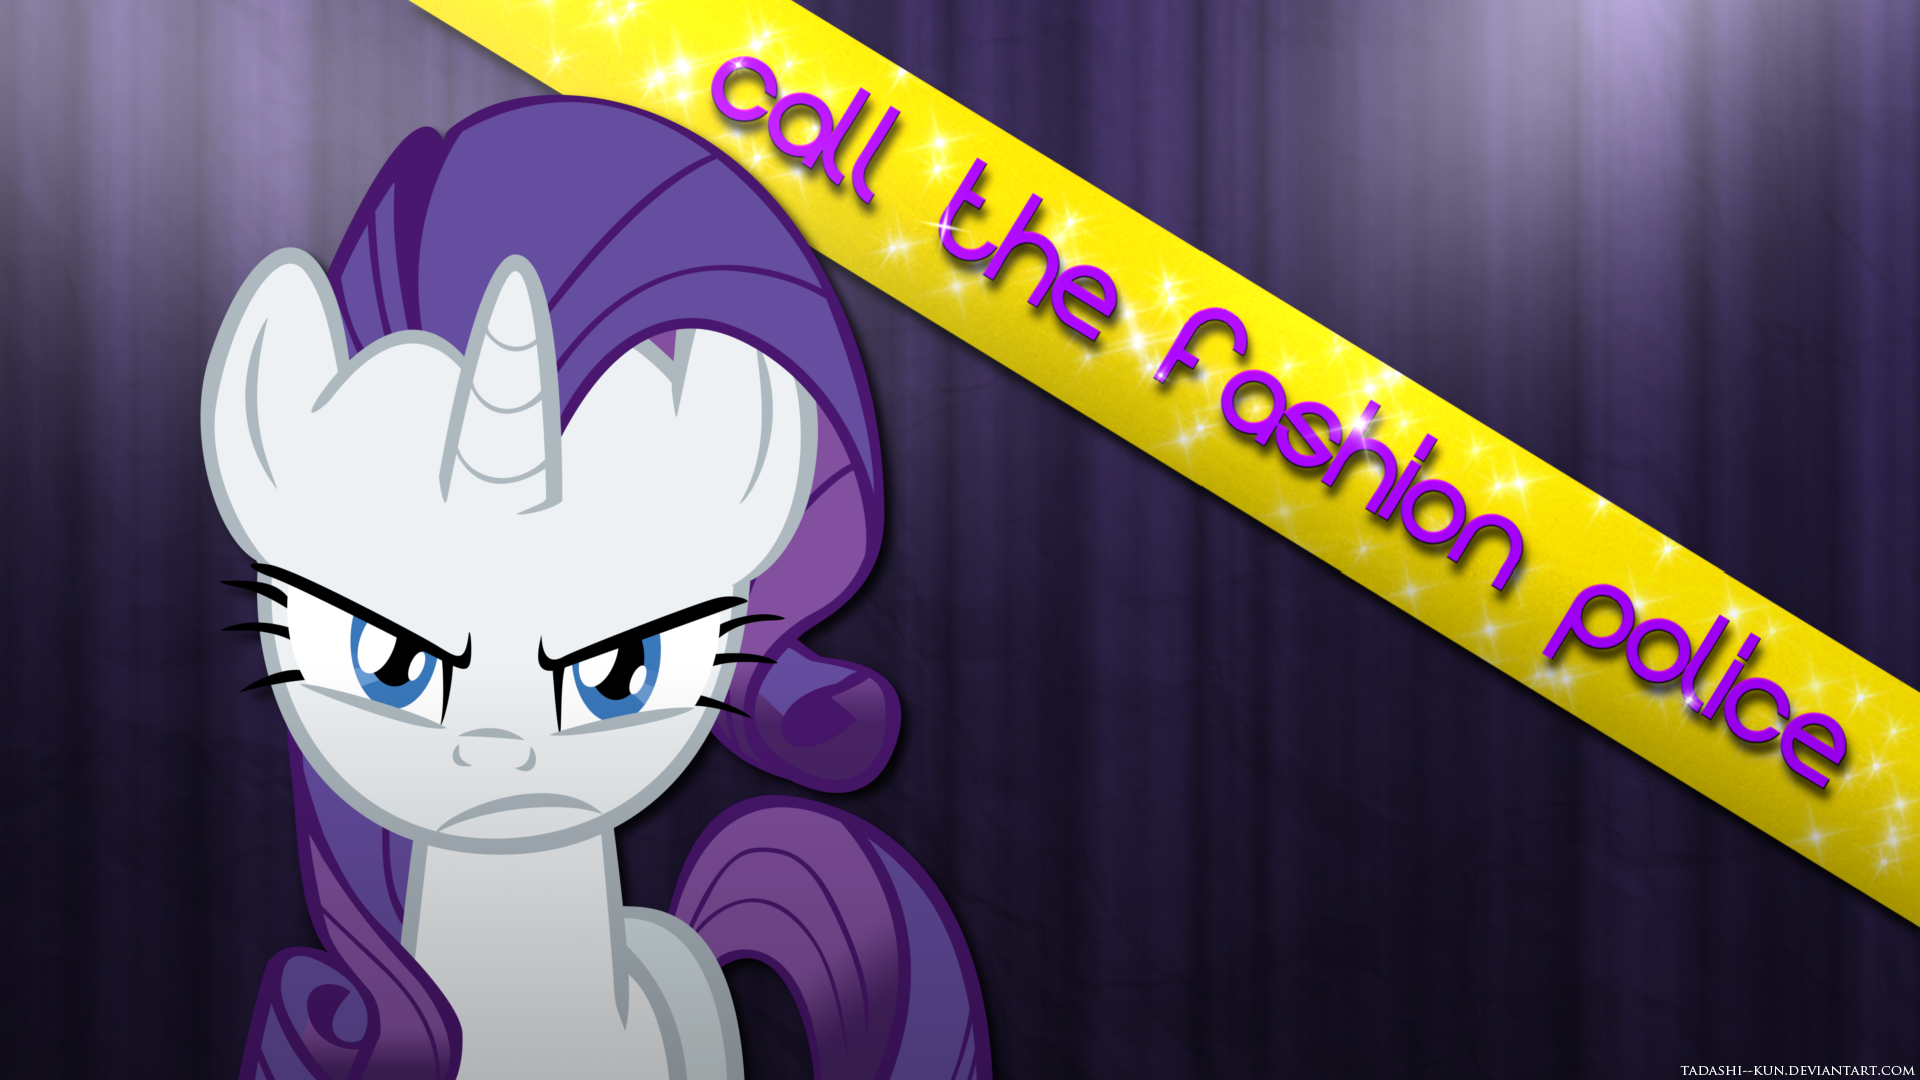 Rarity: Call the fashion police - Wallpaper